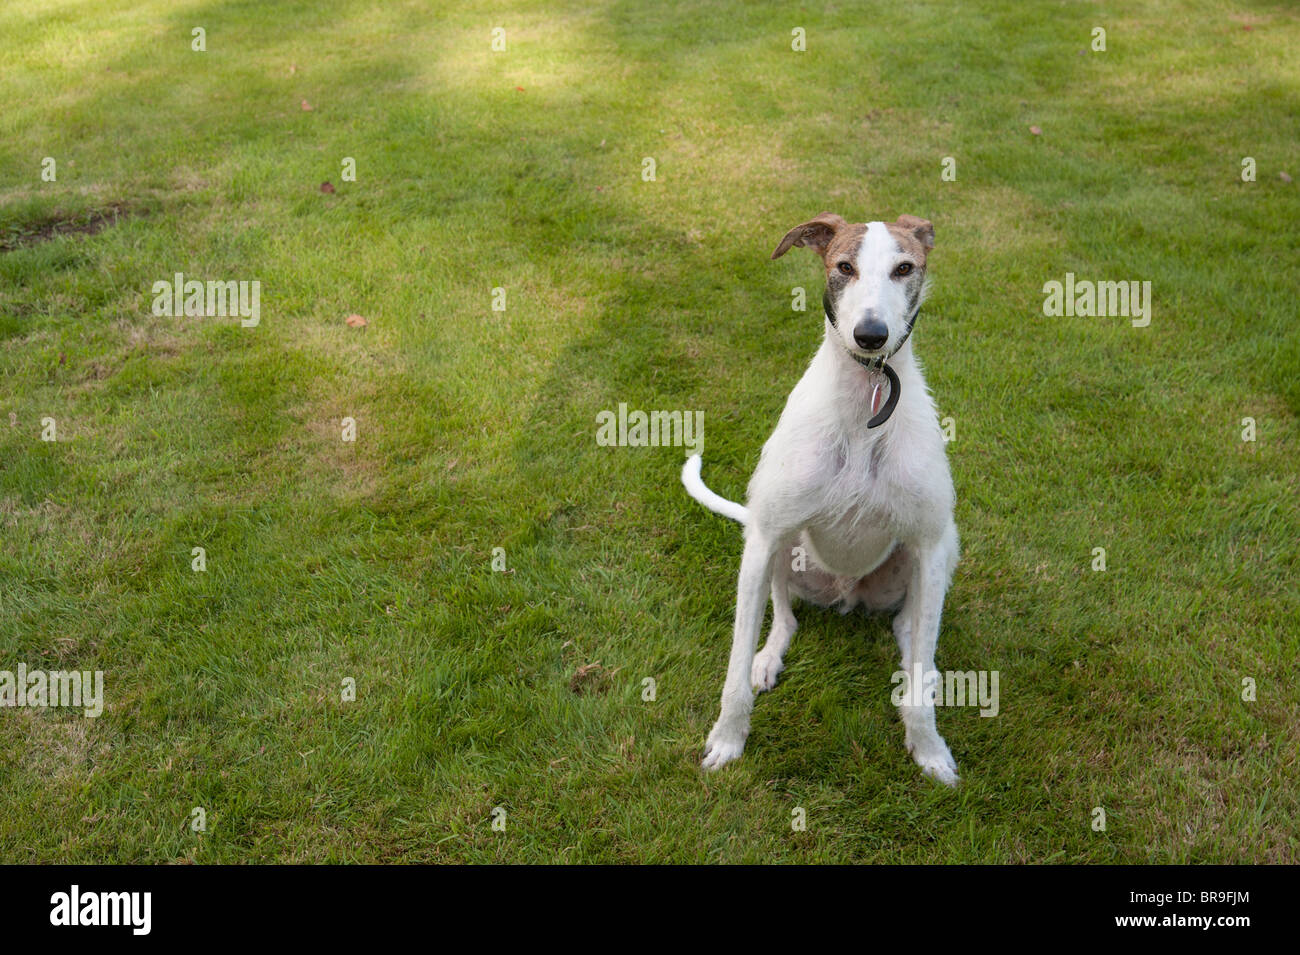 Lurcher sitting obediently on a lawn - Stock Image